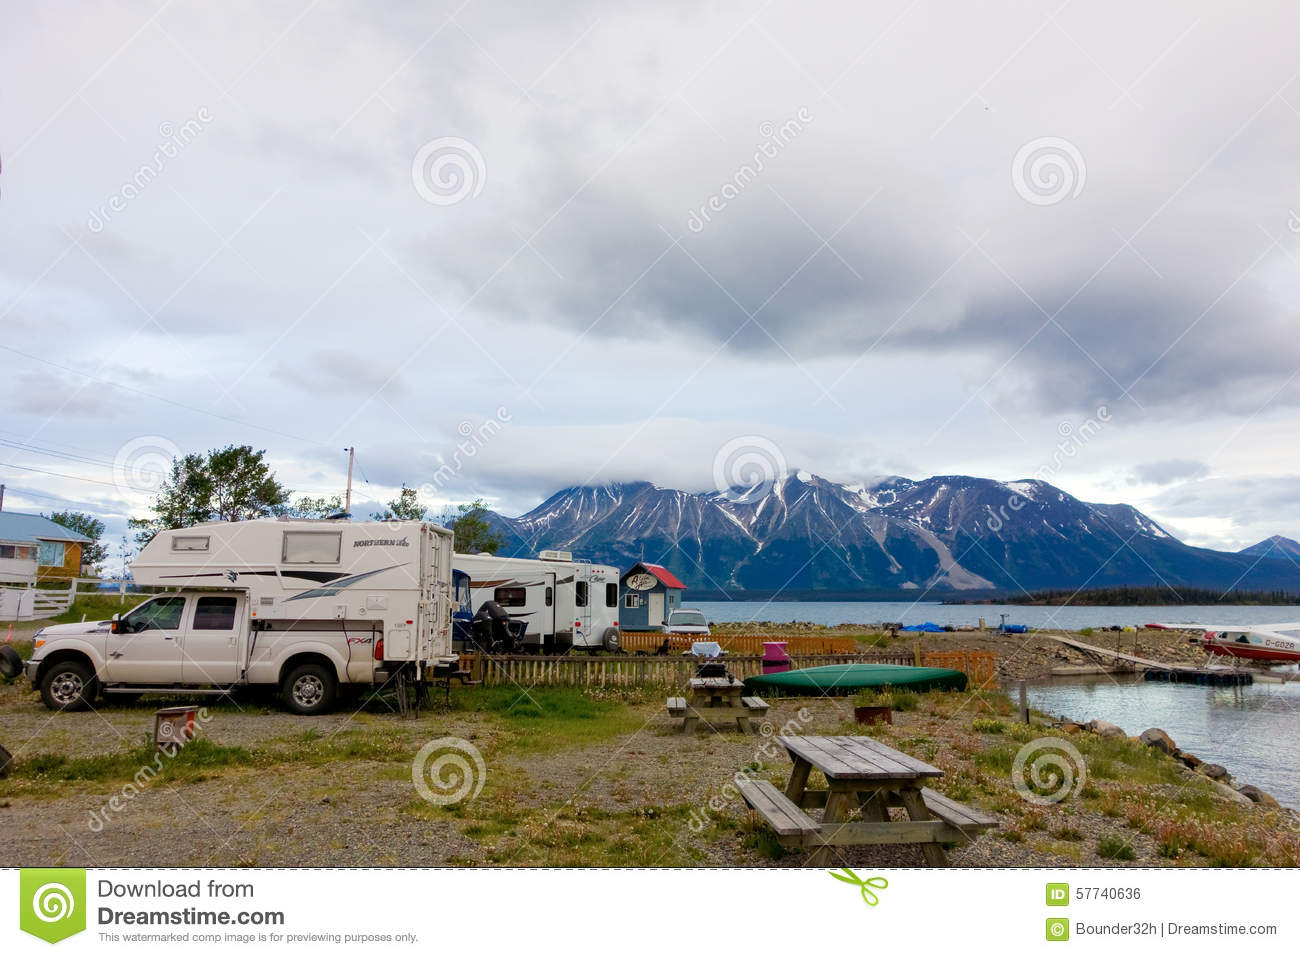 Learn How To Start a Campground From Someone Who Did It